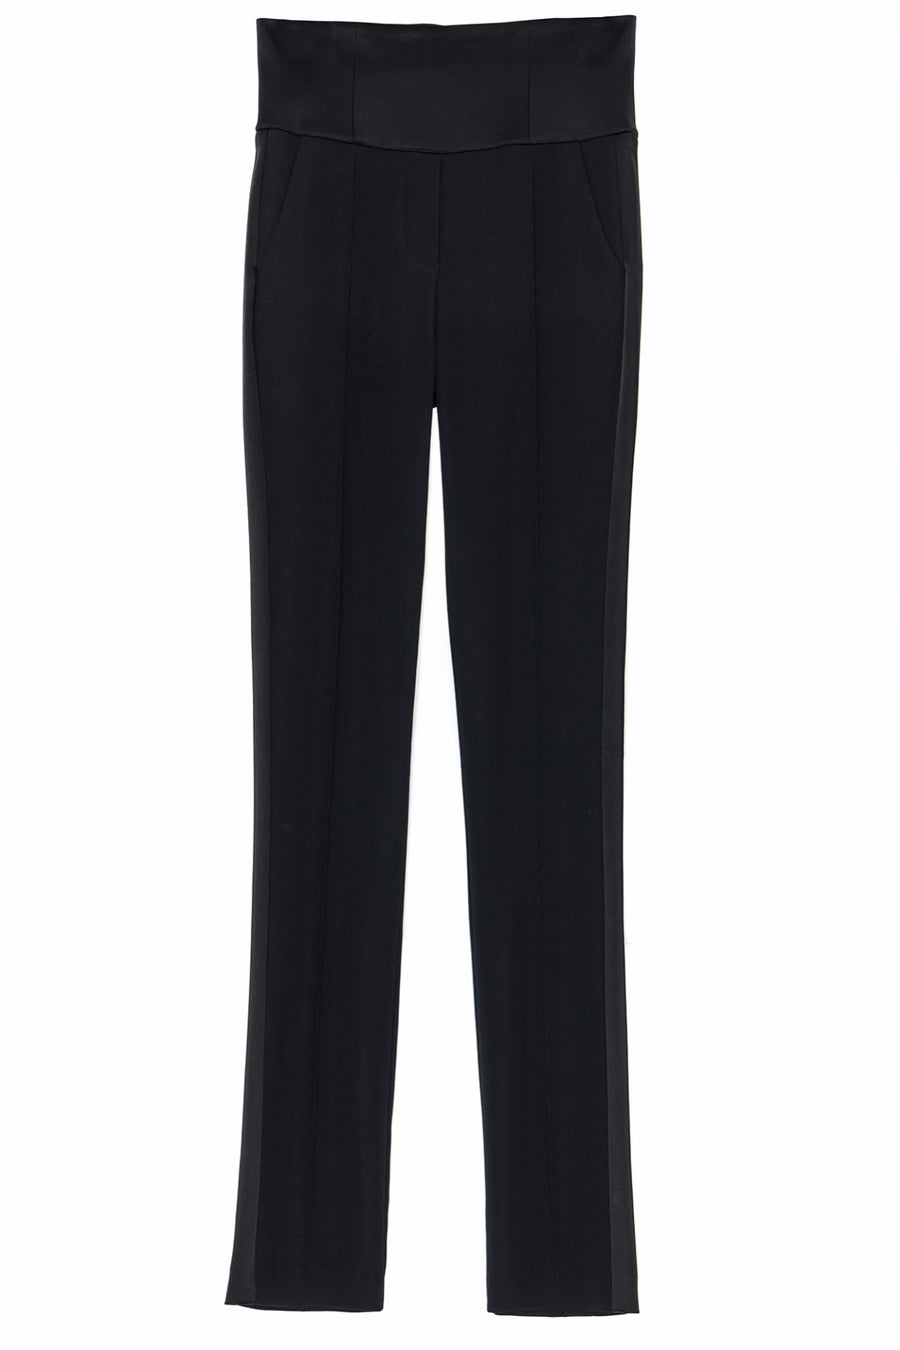 STEFANIE-RENOMA-HIGH-WAISTED-BLACK-TUXEDO-TROUSERS-SILKARMOUR